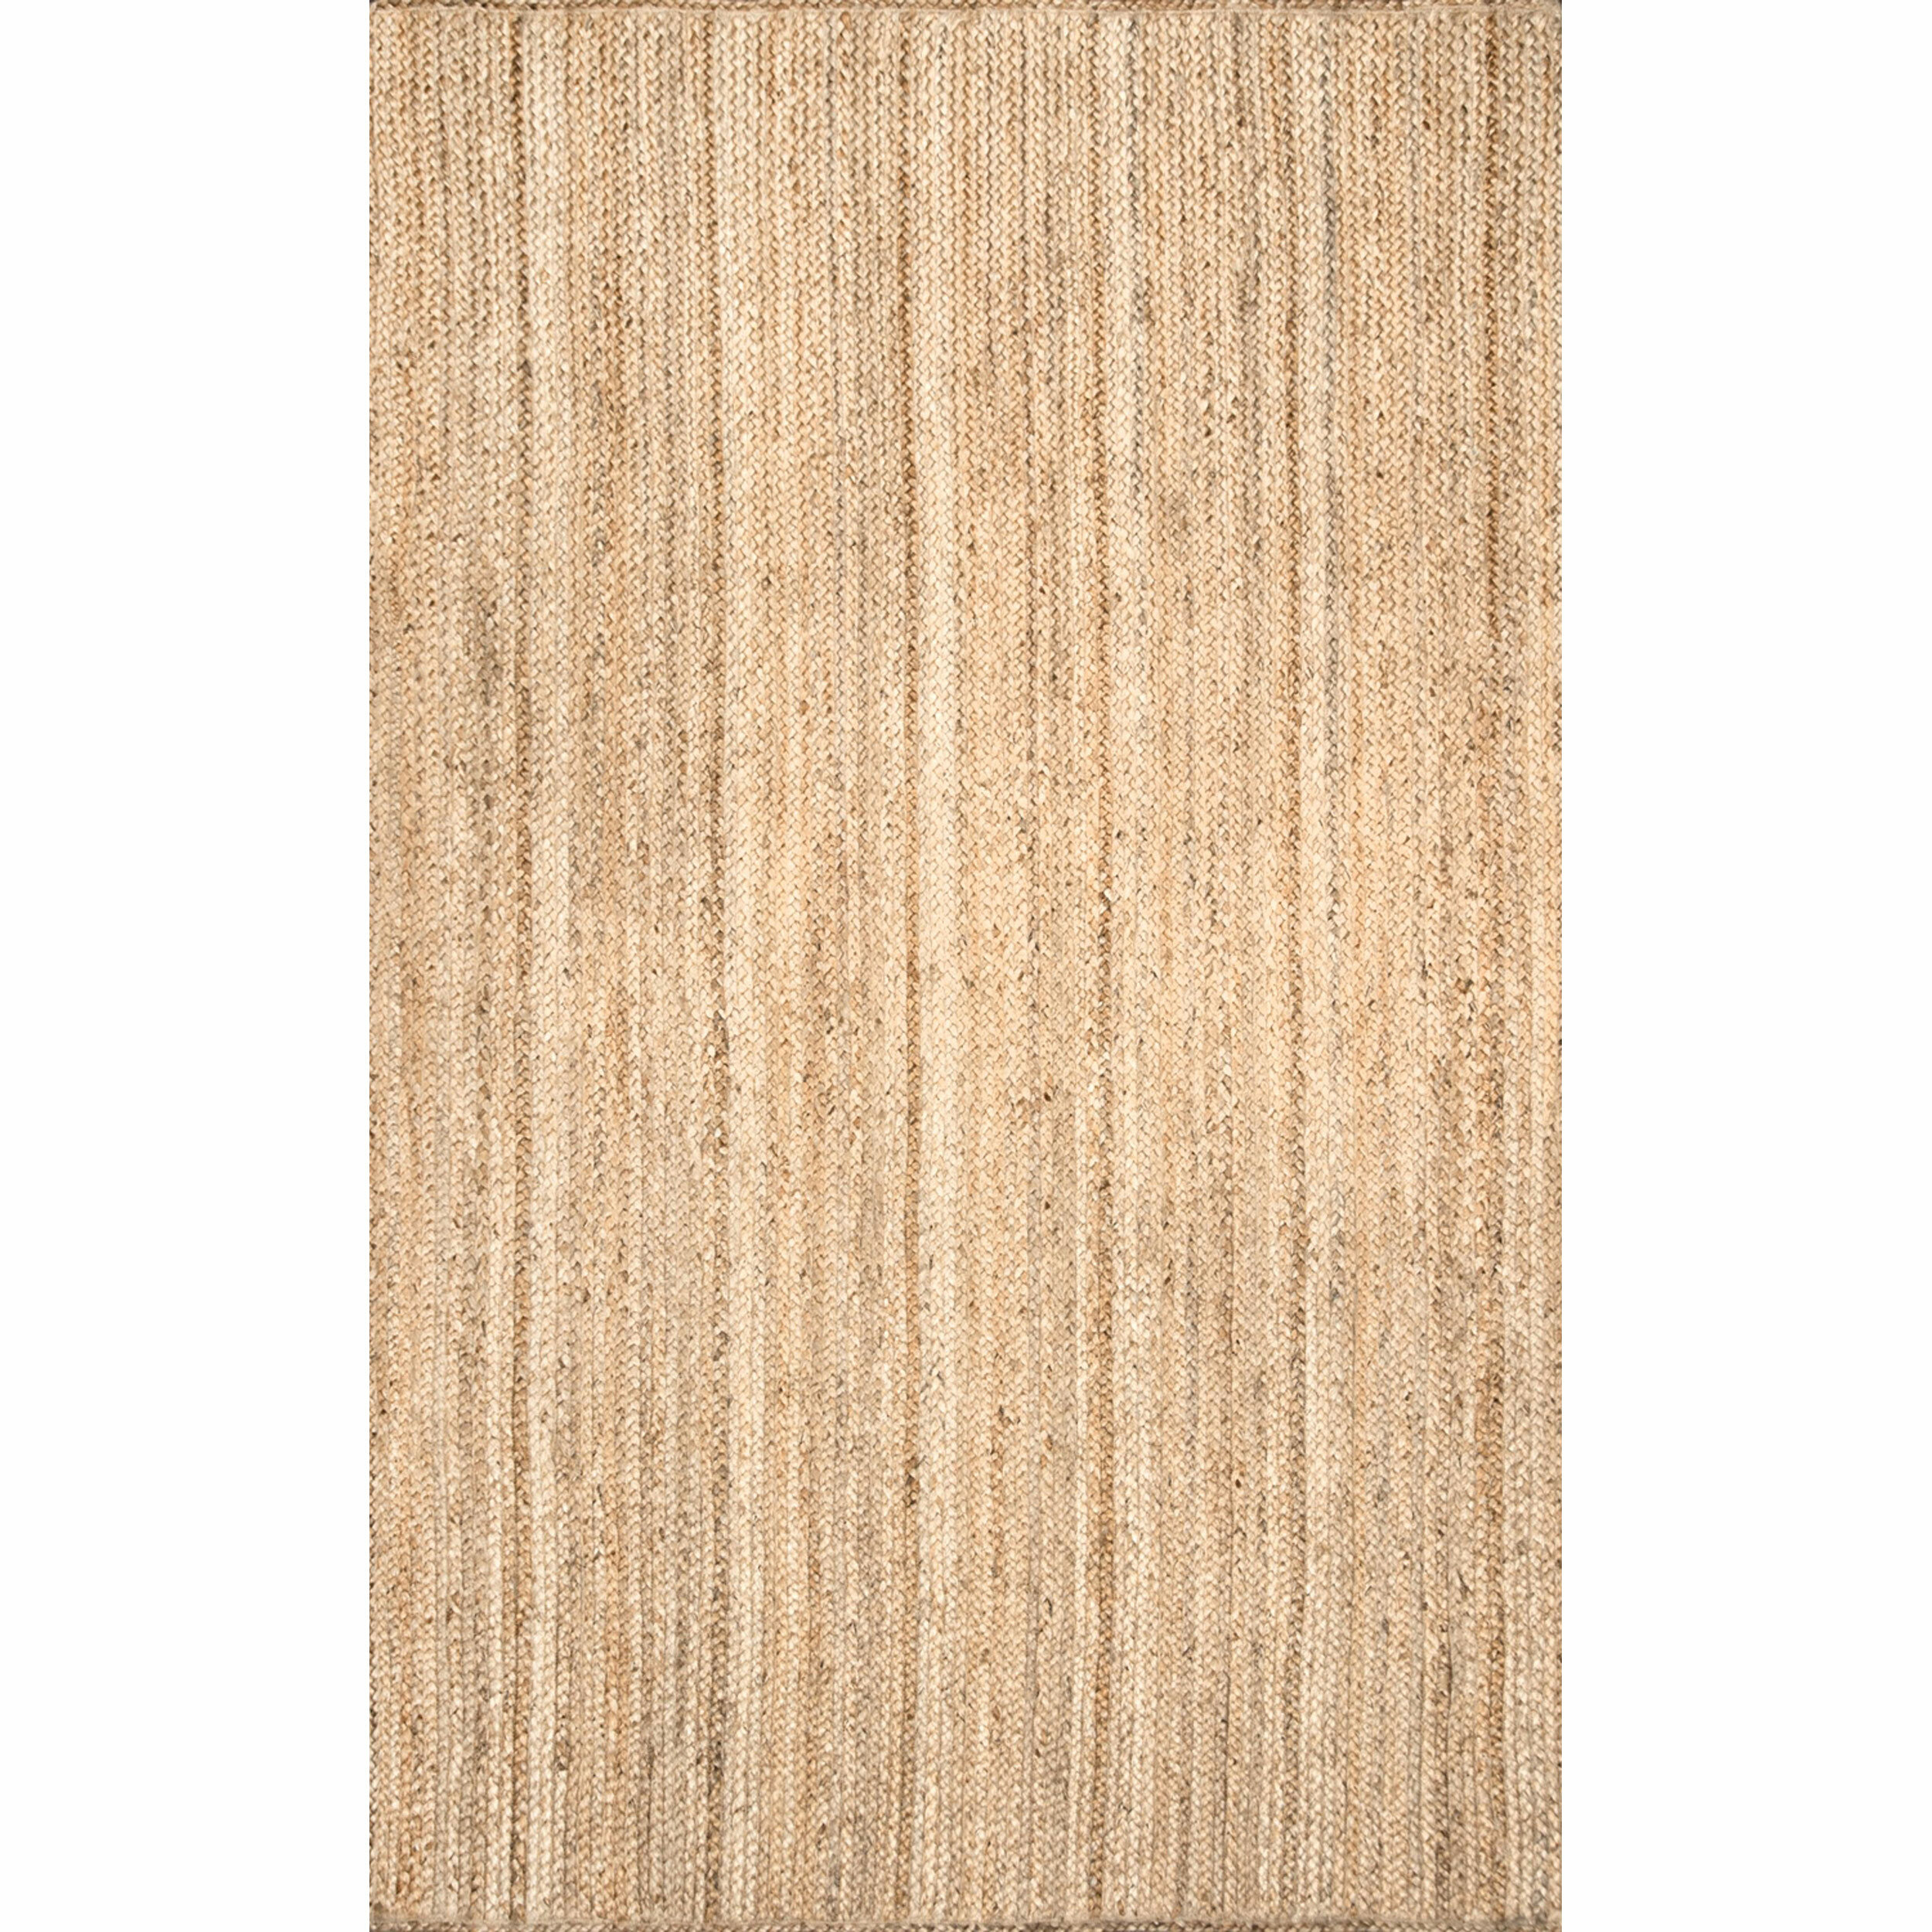 Latham rigo jute hand woven tan area rug reviews joss main